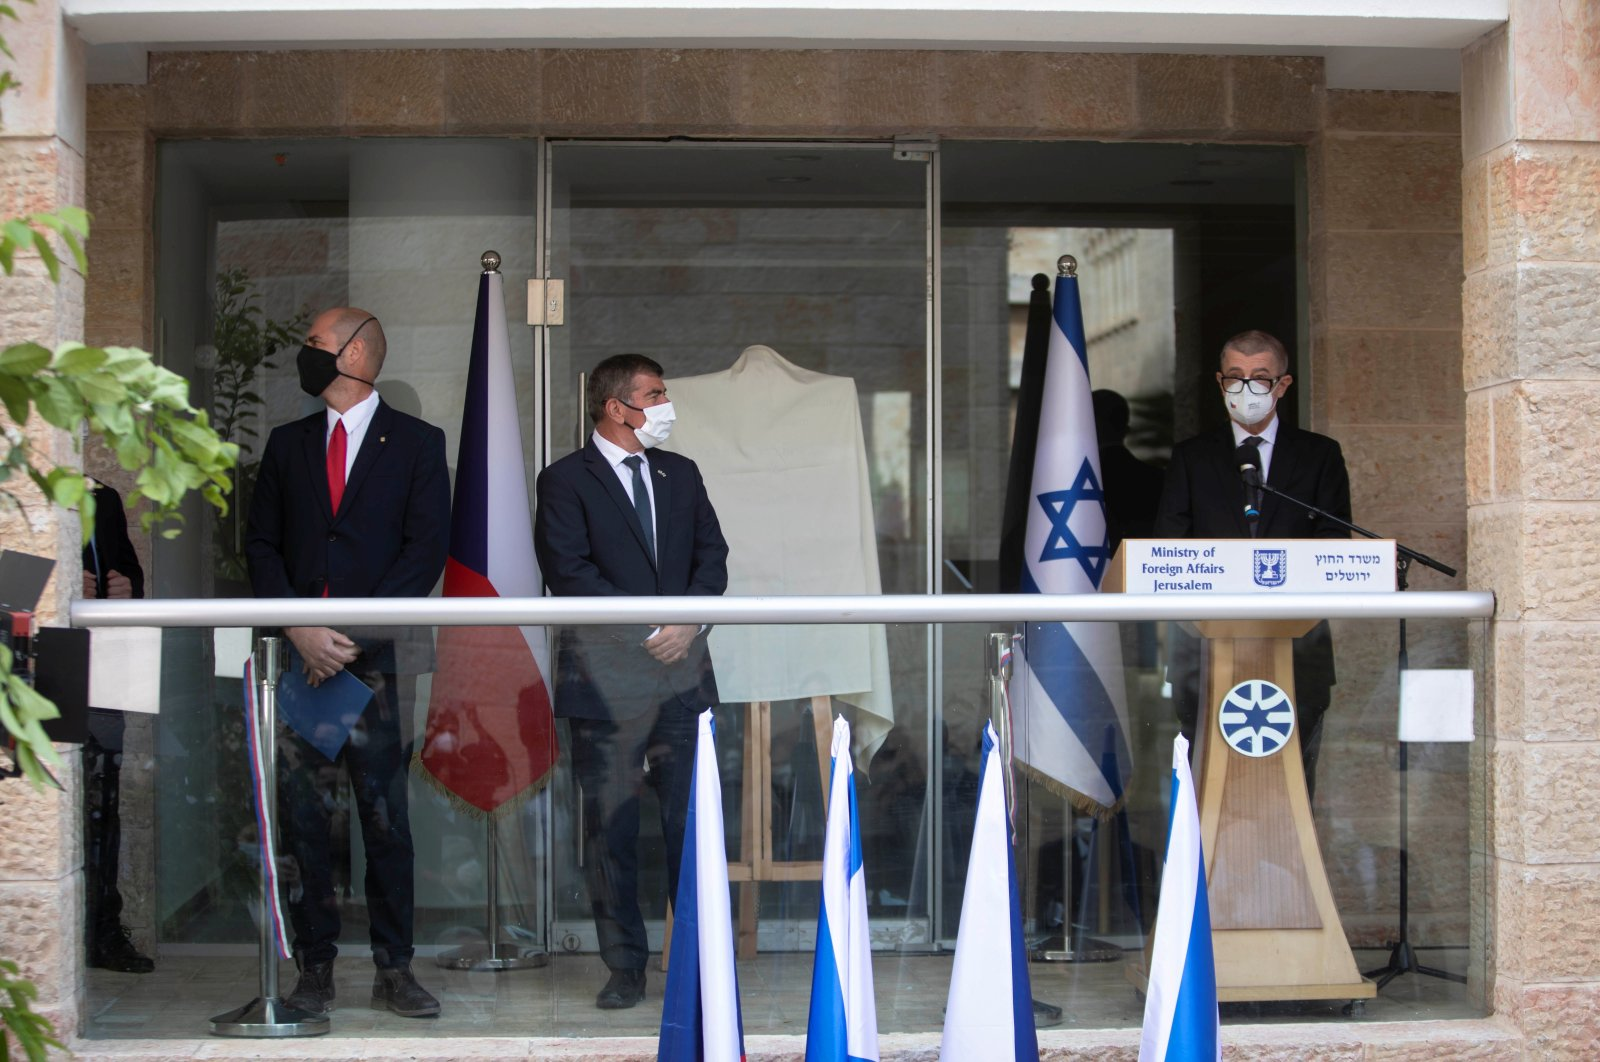 Czech Prime Minister Andrej Babis, Israeli Foreign Minister Gabi Ashkenazi and Israeli Public Security Minister Amir Ohana attend an inauguration ceremony of a Czech diplomatic representation in Jerusalem March 11, 2021. (REUTERS)